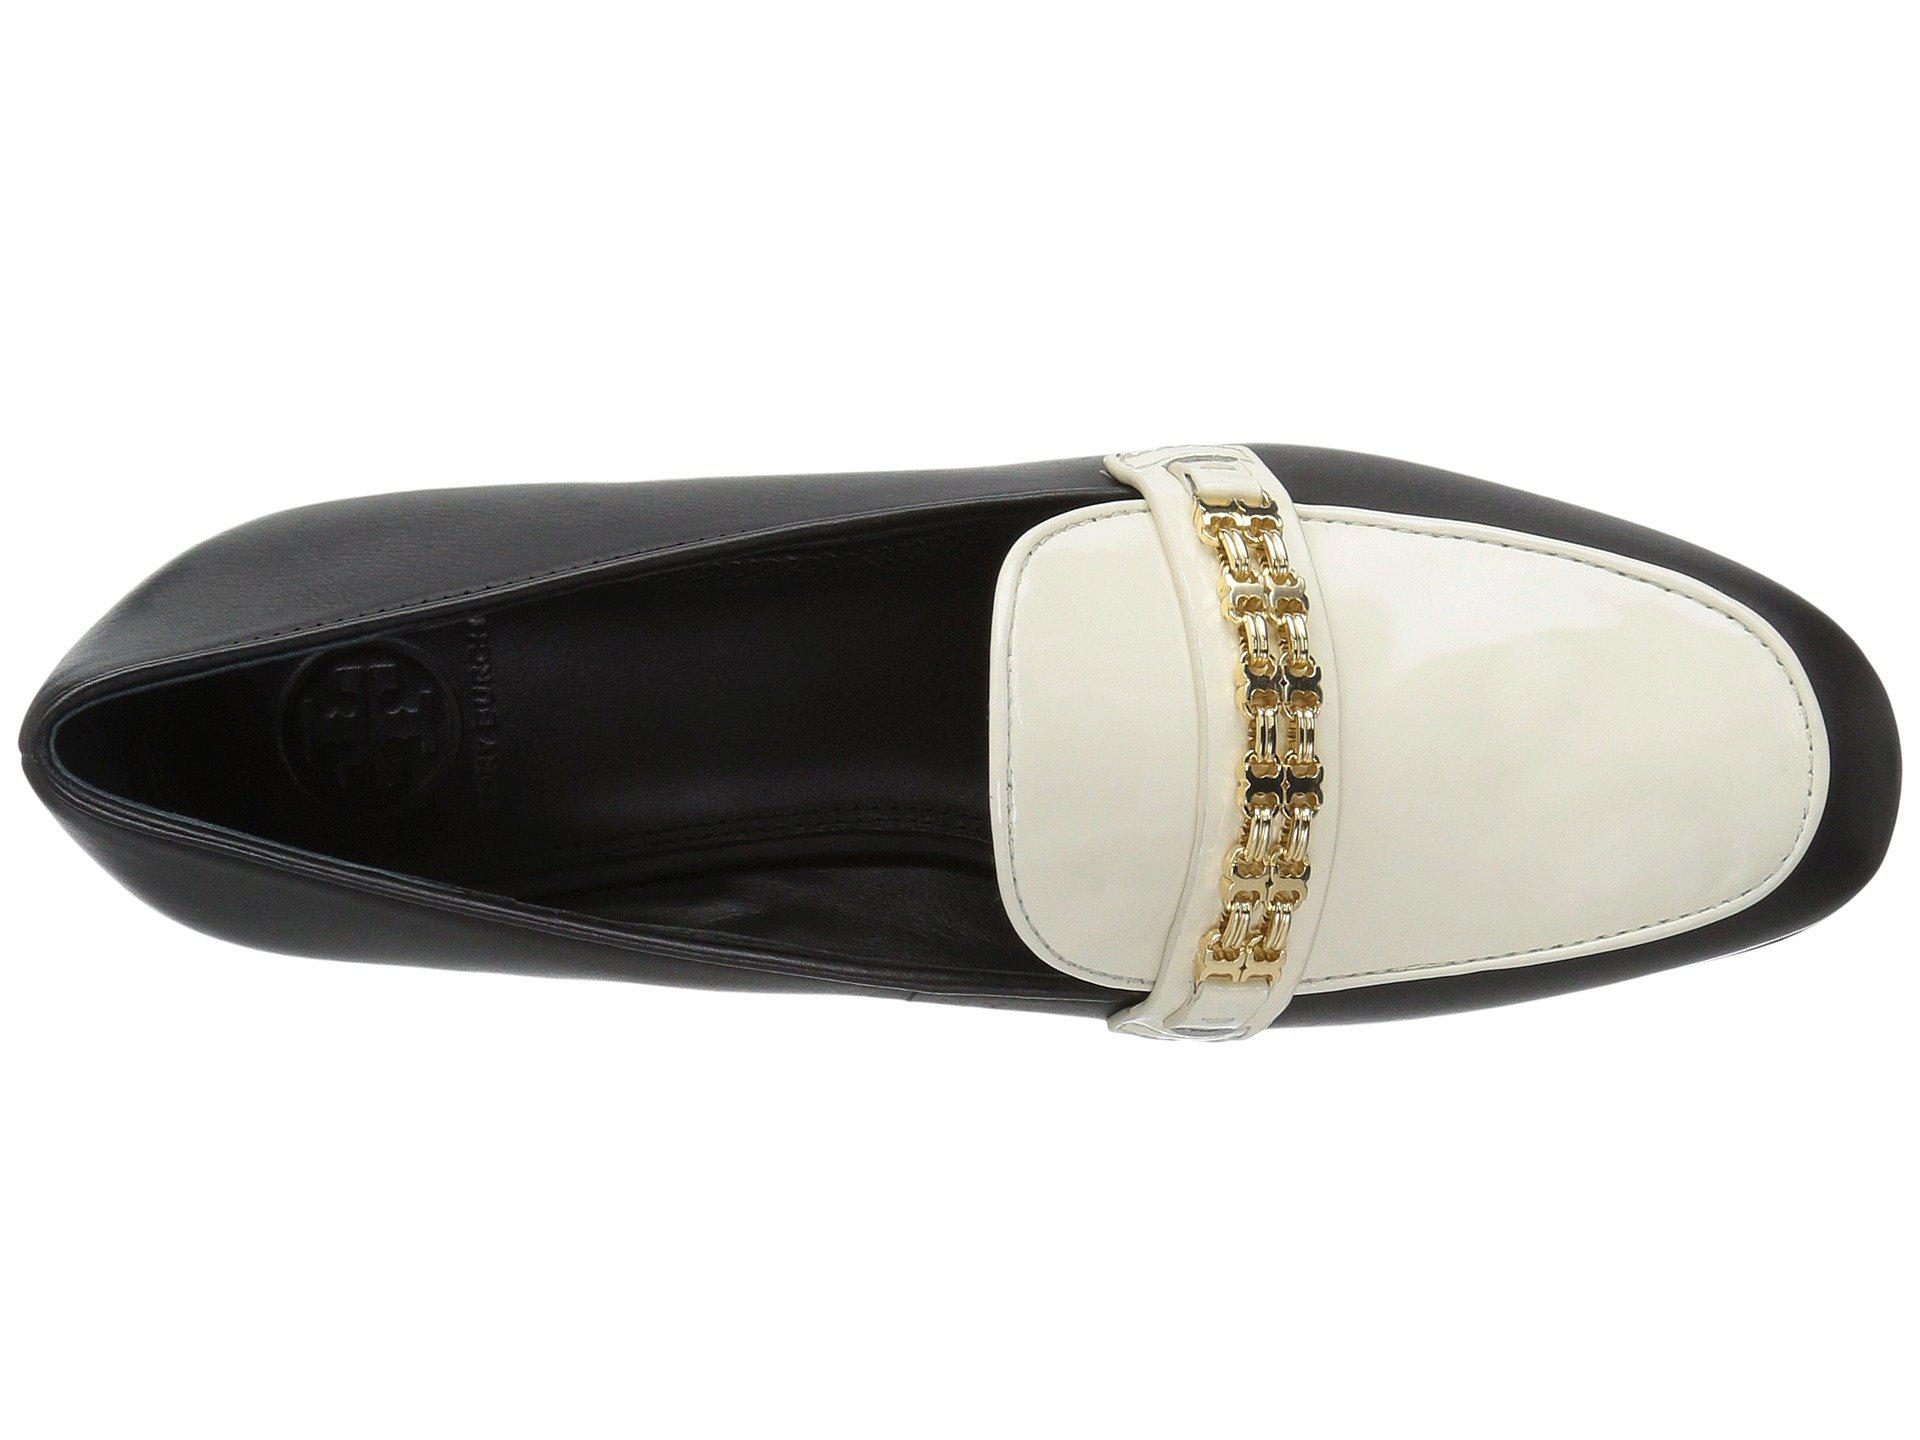 ddd28dc6c Lyst - Tory Burch Gemini Link Loafer in Black - Save 53.53846153846154%